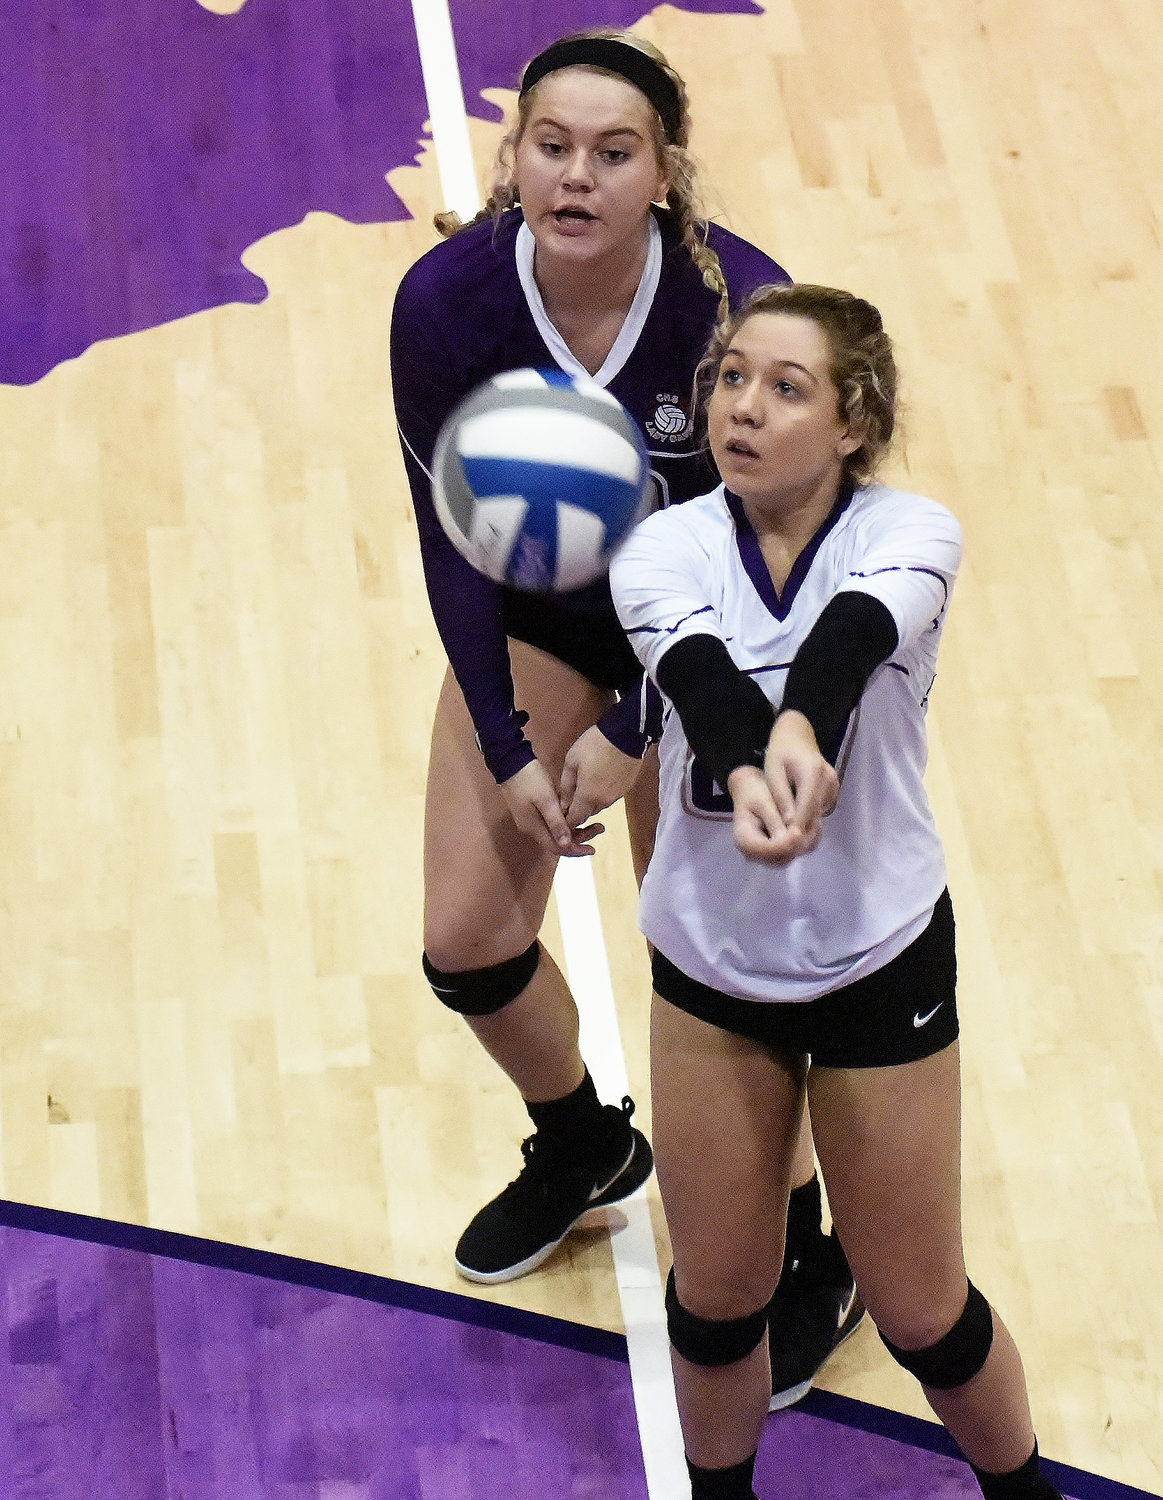 Cartersville libero Anna Mathis looks to pass the ball, as teammate Rebekah Stevens looks on, during Wednesday's Class 4A state playoff second-round match against LaFayette at The Storm Center. The Canes will host St. Pius X in the semifinals at 6 tonight.